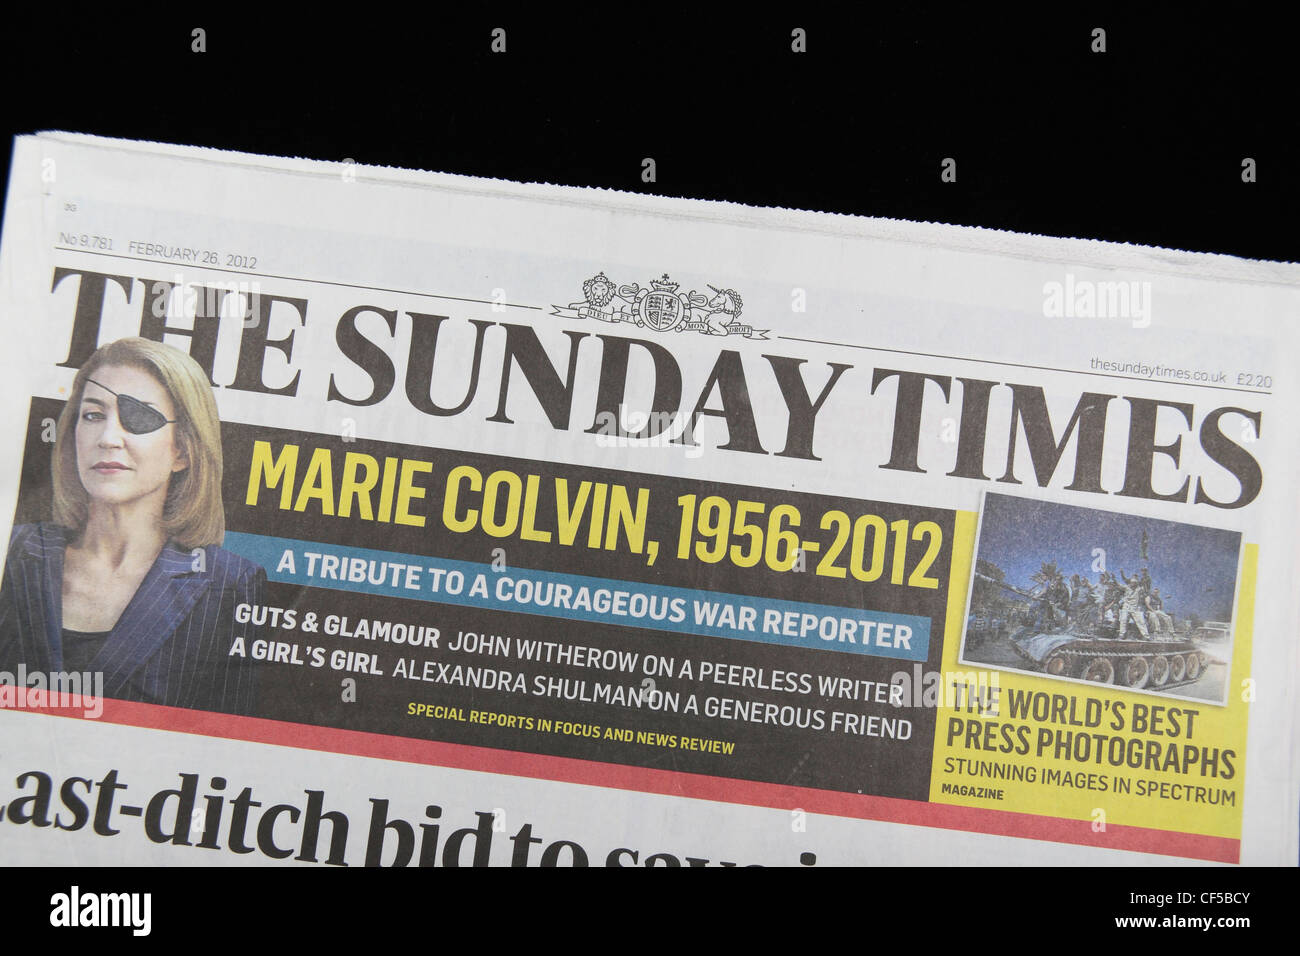 The front page of The Sunday Times,a British national Sunday newspaper.  (26th Feb 2012) - Stock Image